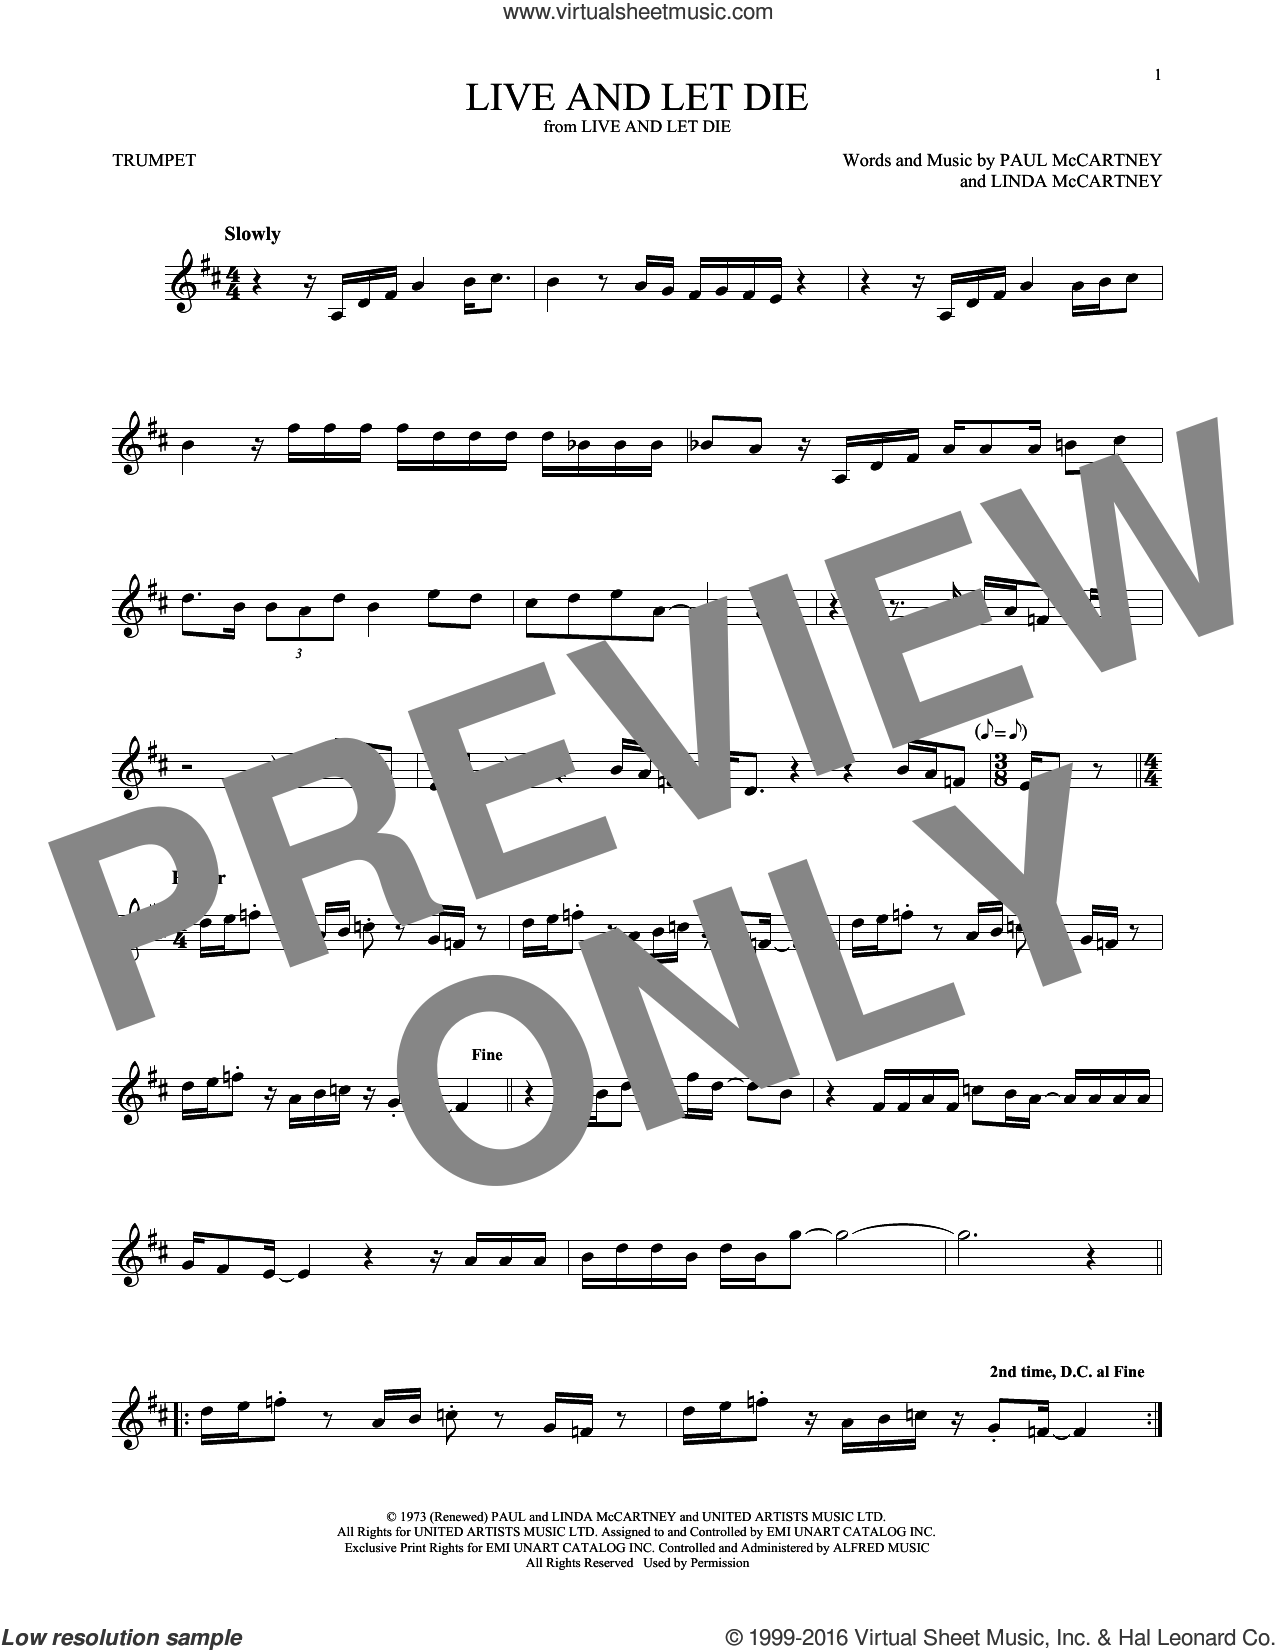 Live And Let Die sheet music for trumpet solo by Paul McCartney, Wings and Linda McCartney. Score Image Preview.